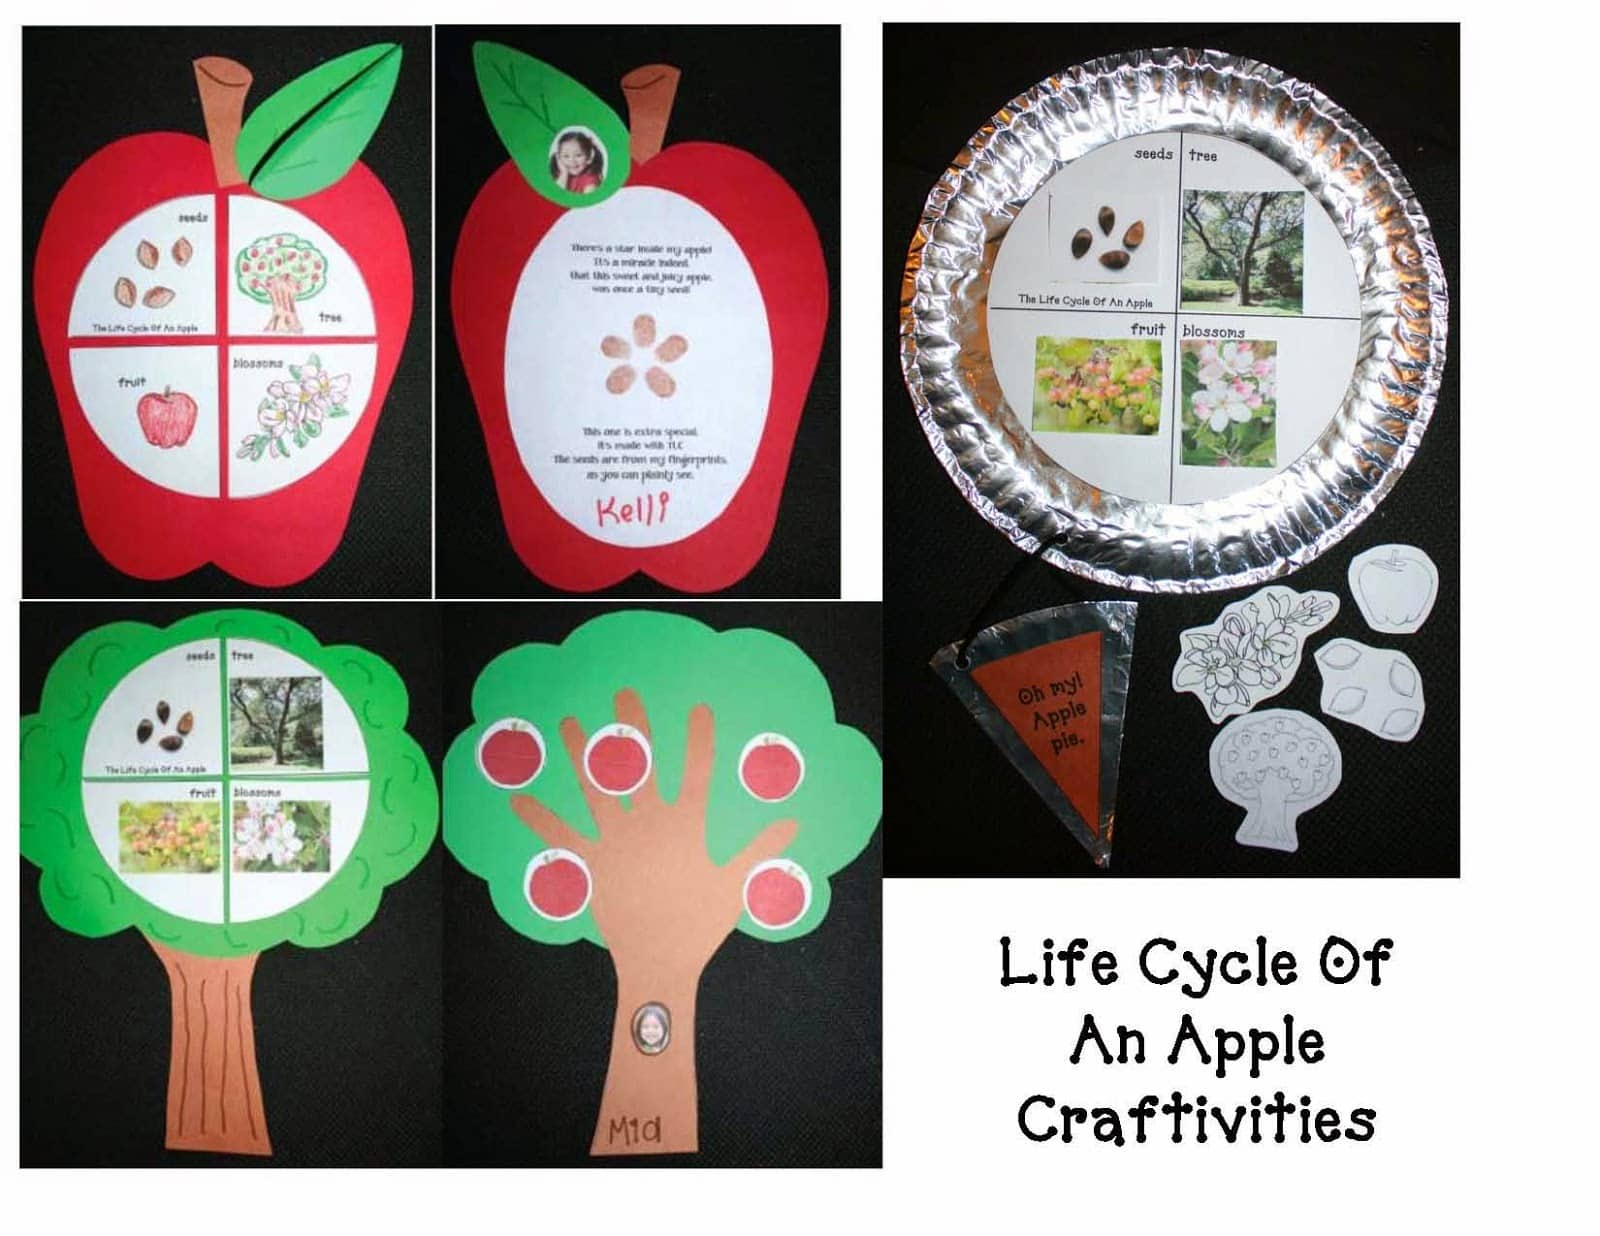 Life Cycle Of An Apple Craftivities